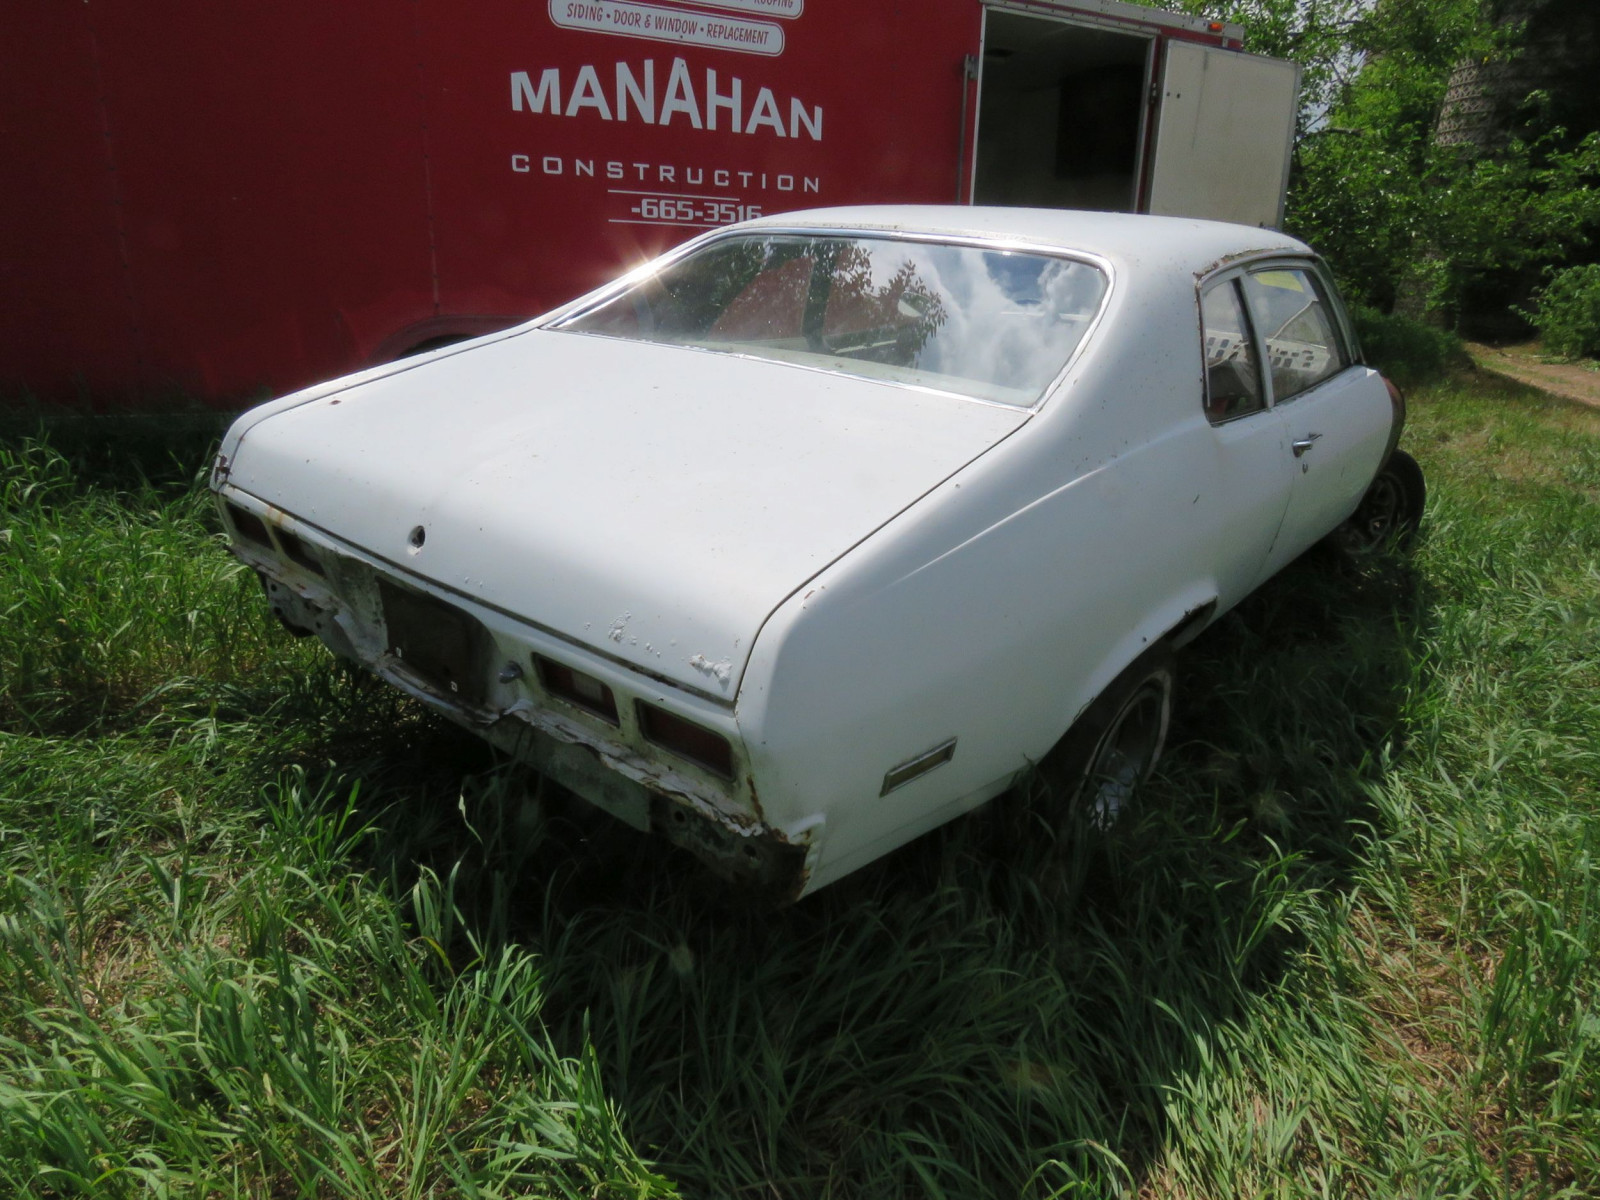 1973 Chevrolet Nova Body for Restore or Parts - Image 4